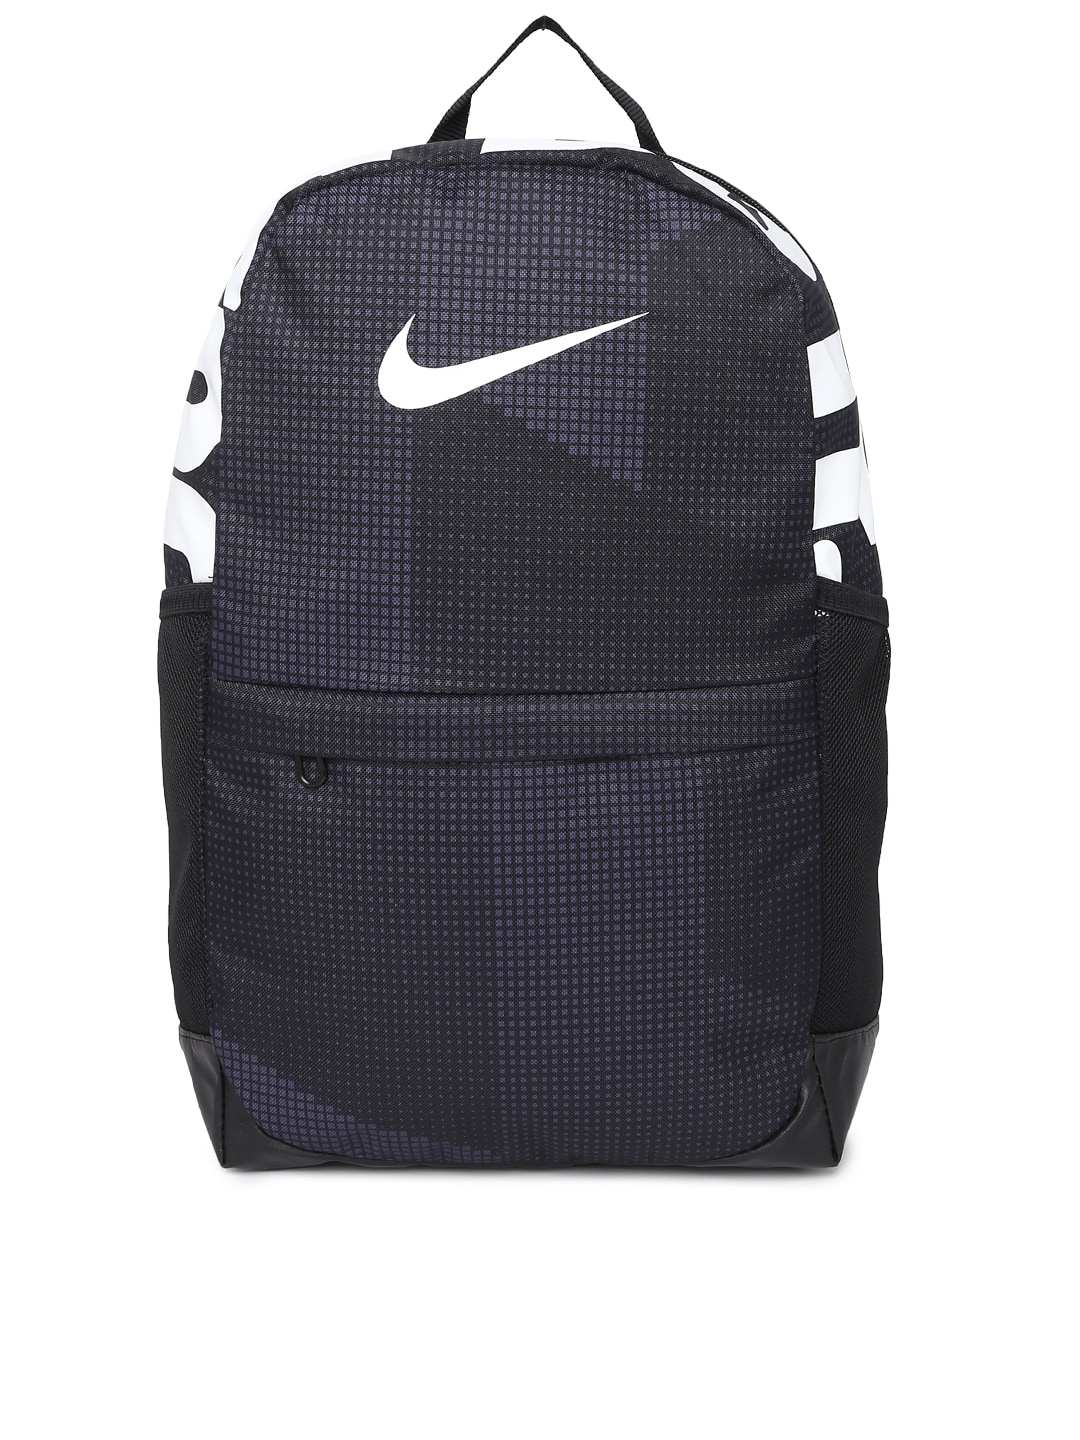 5db8d0ed2629 Backpack Boys Girls Backpacks - Buy Backpack Boys Girls Backpacks online in  India